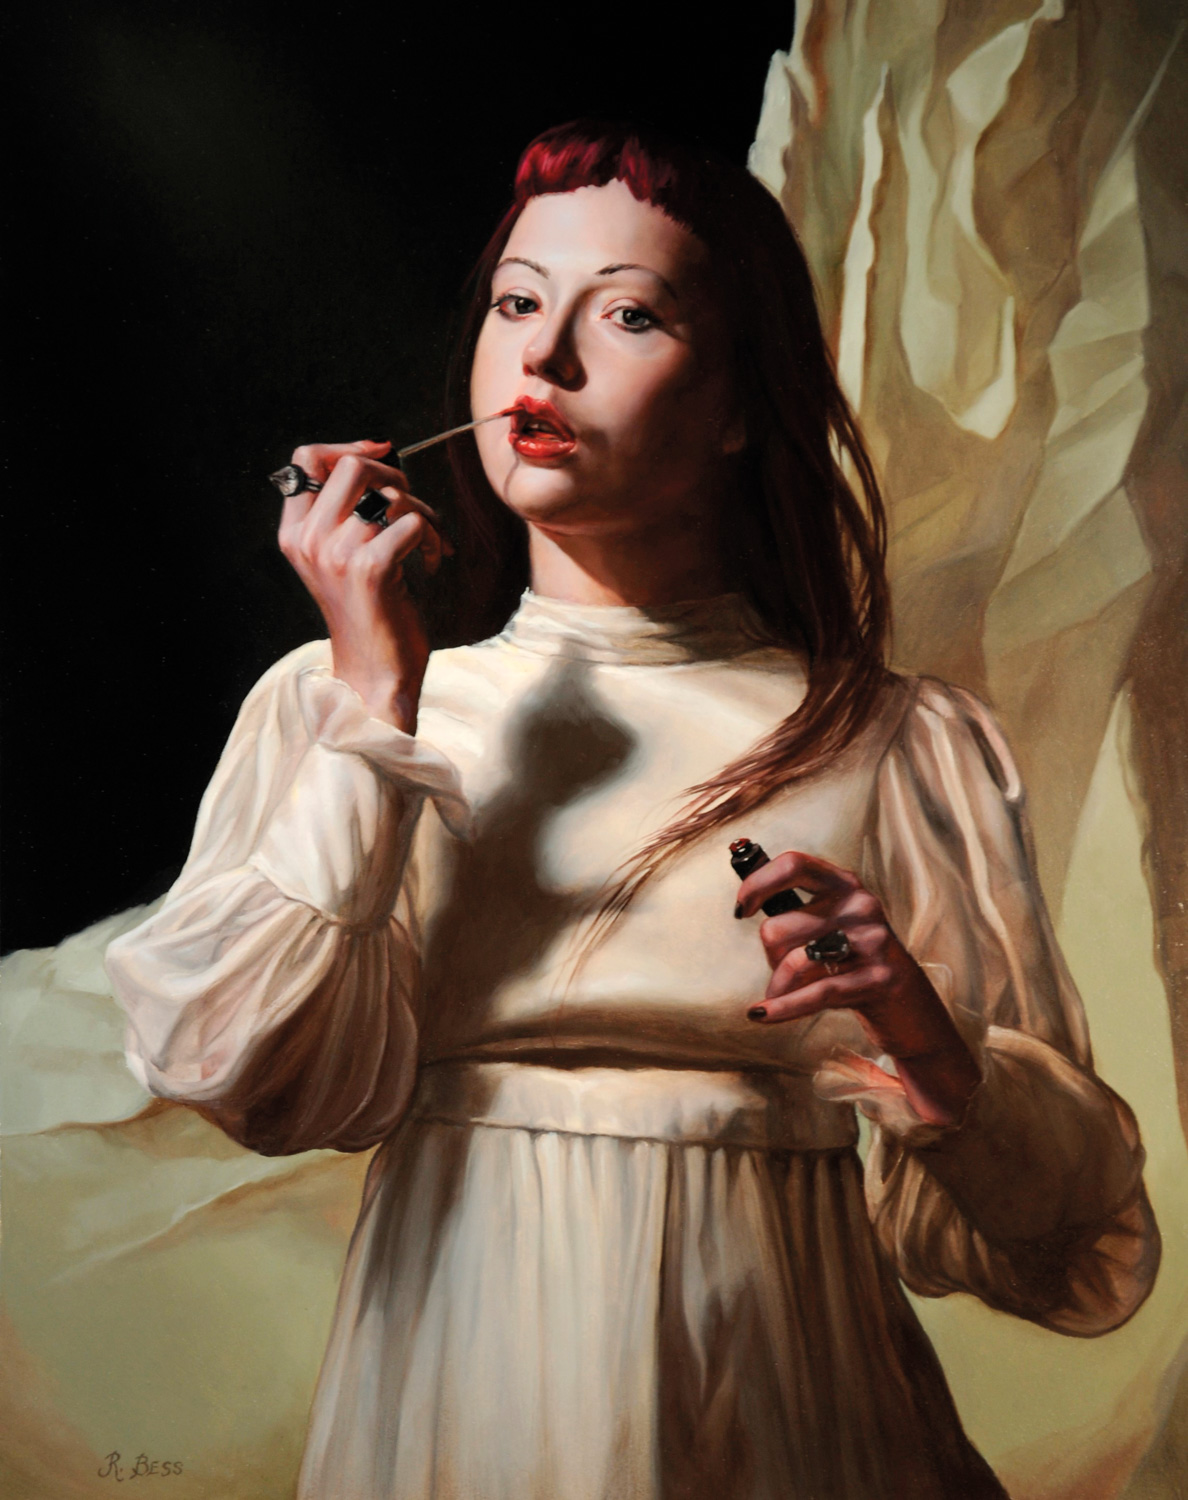 Oil painting of young woman applying lipstick